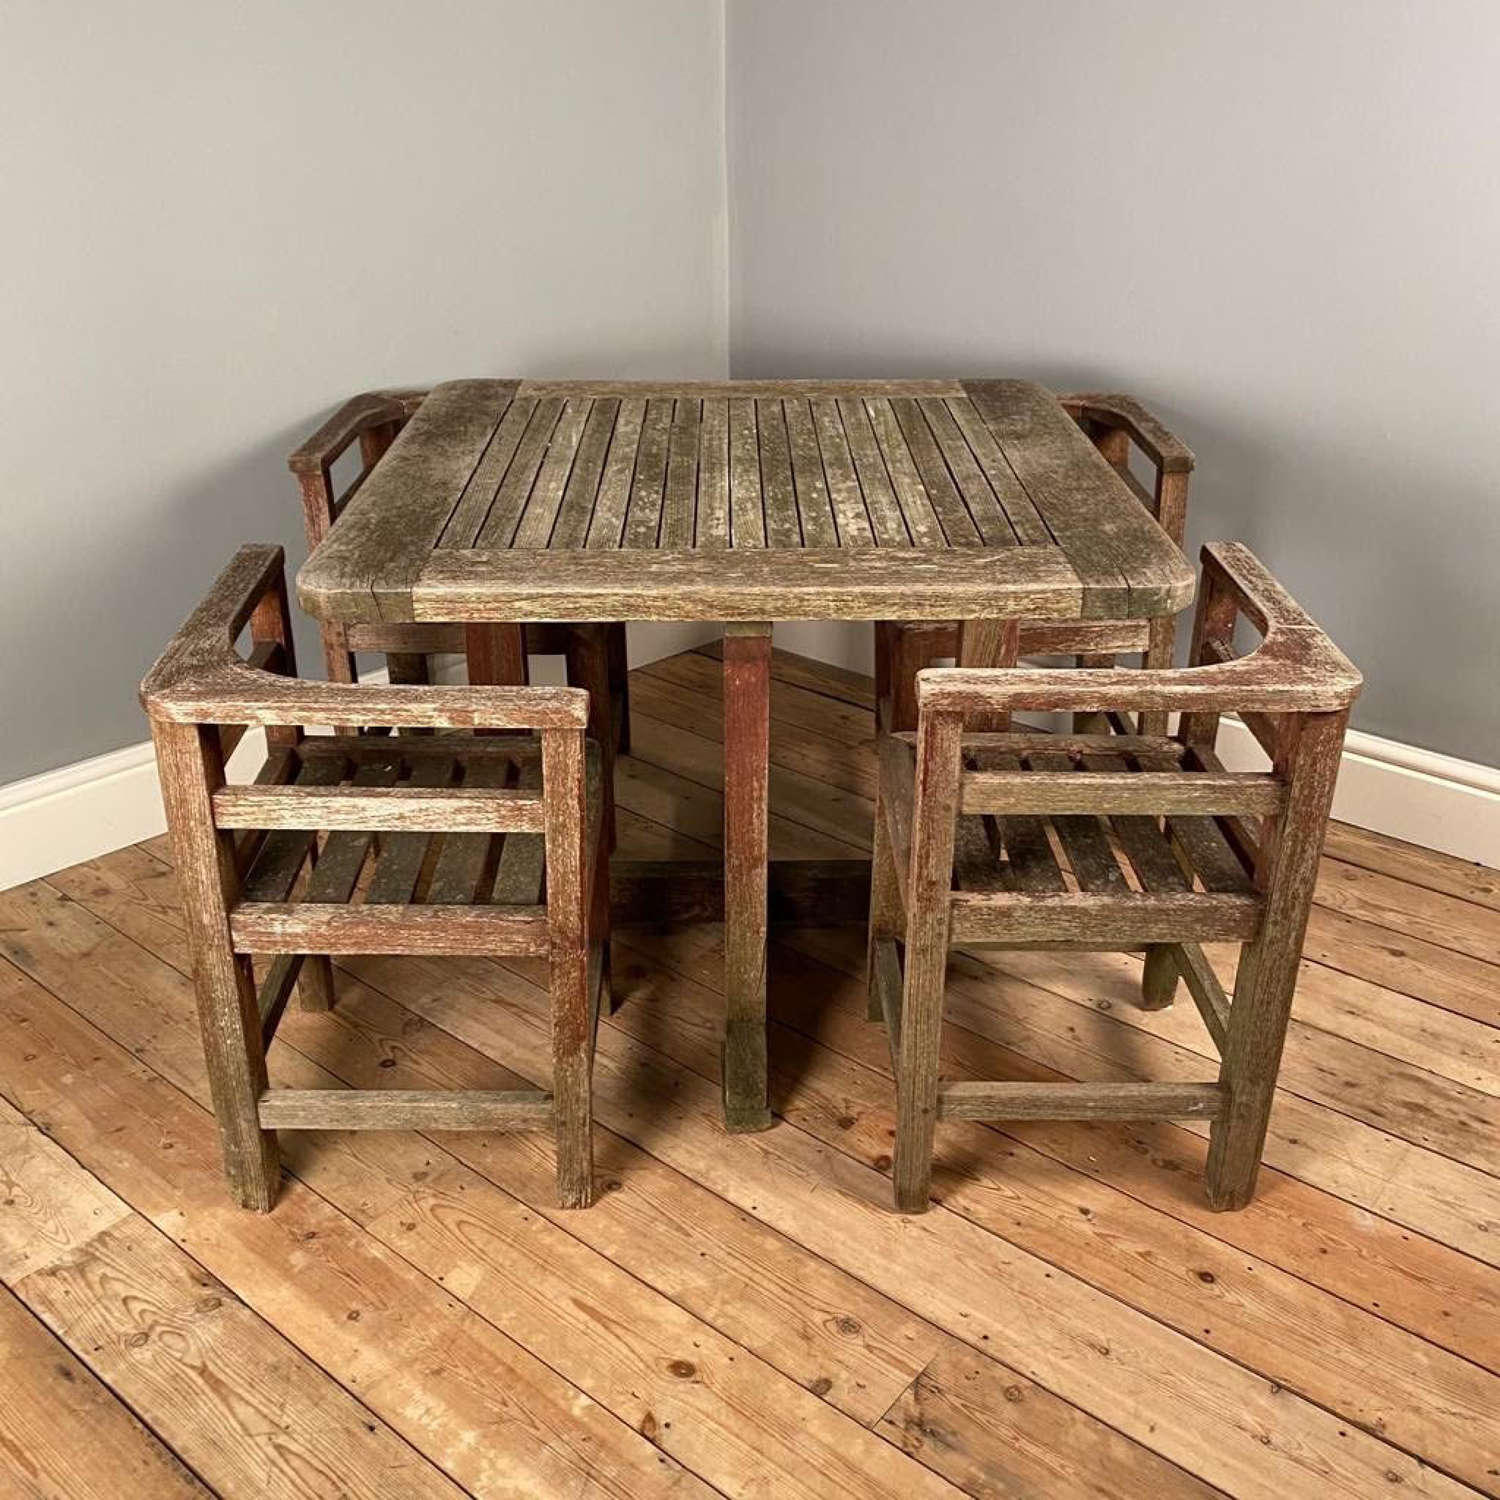 1930's Heals Plus 4 Teak Garden Table and Chairs